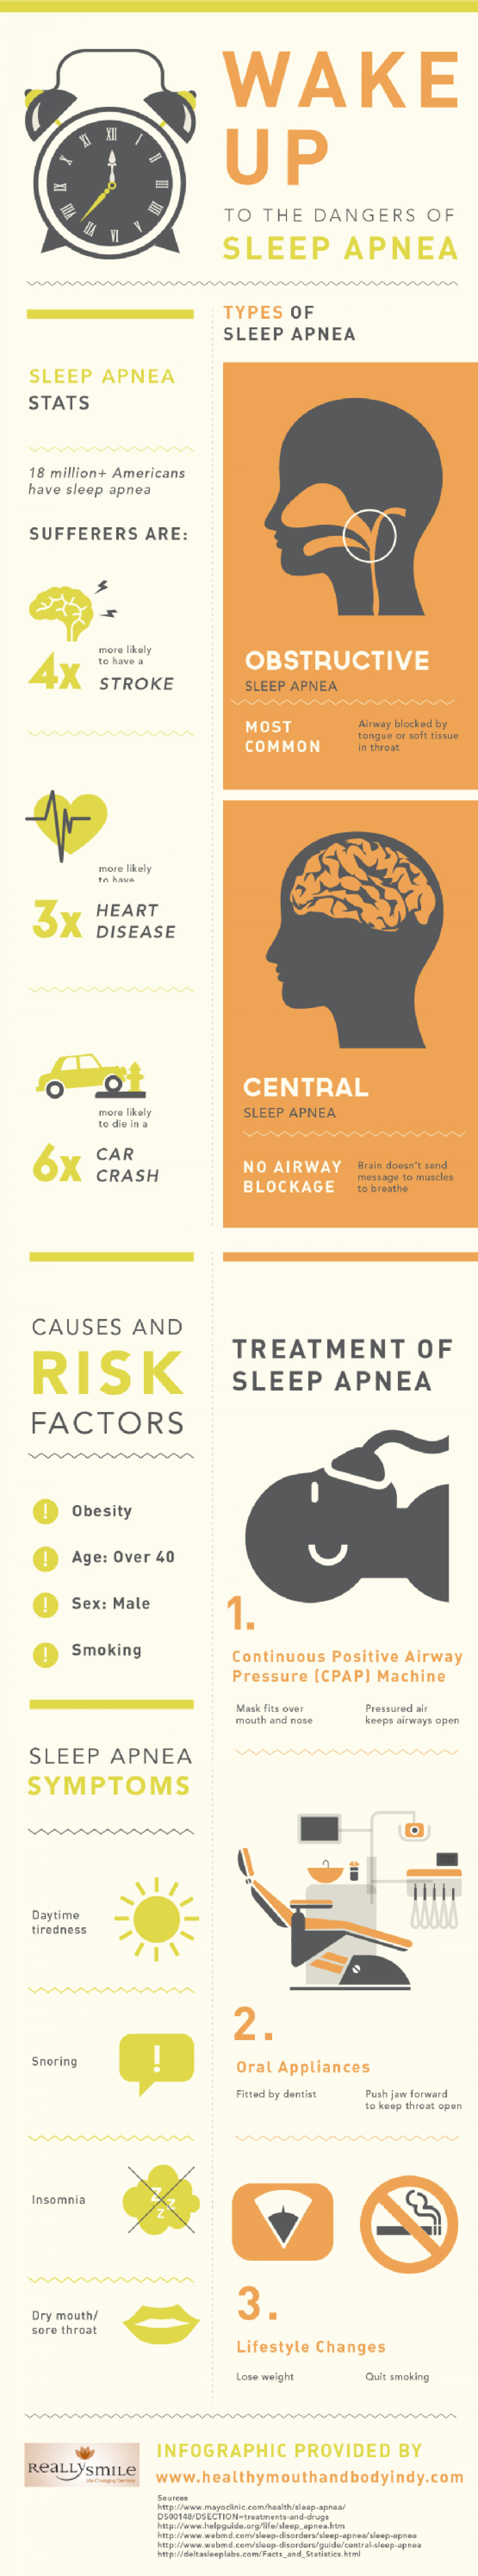 Wake Up to the Dangers of Sleep Apnea Infographic